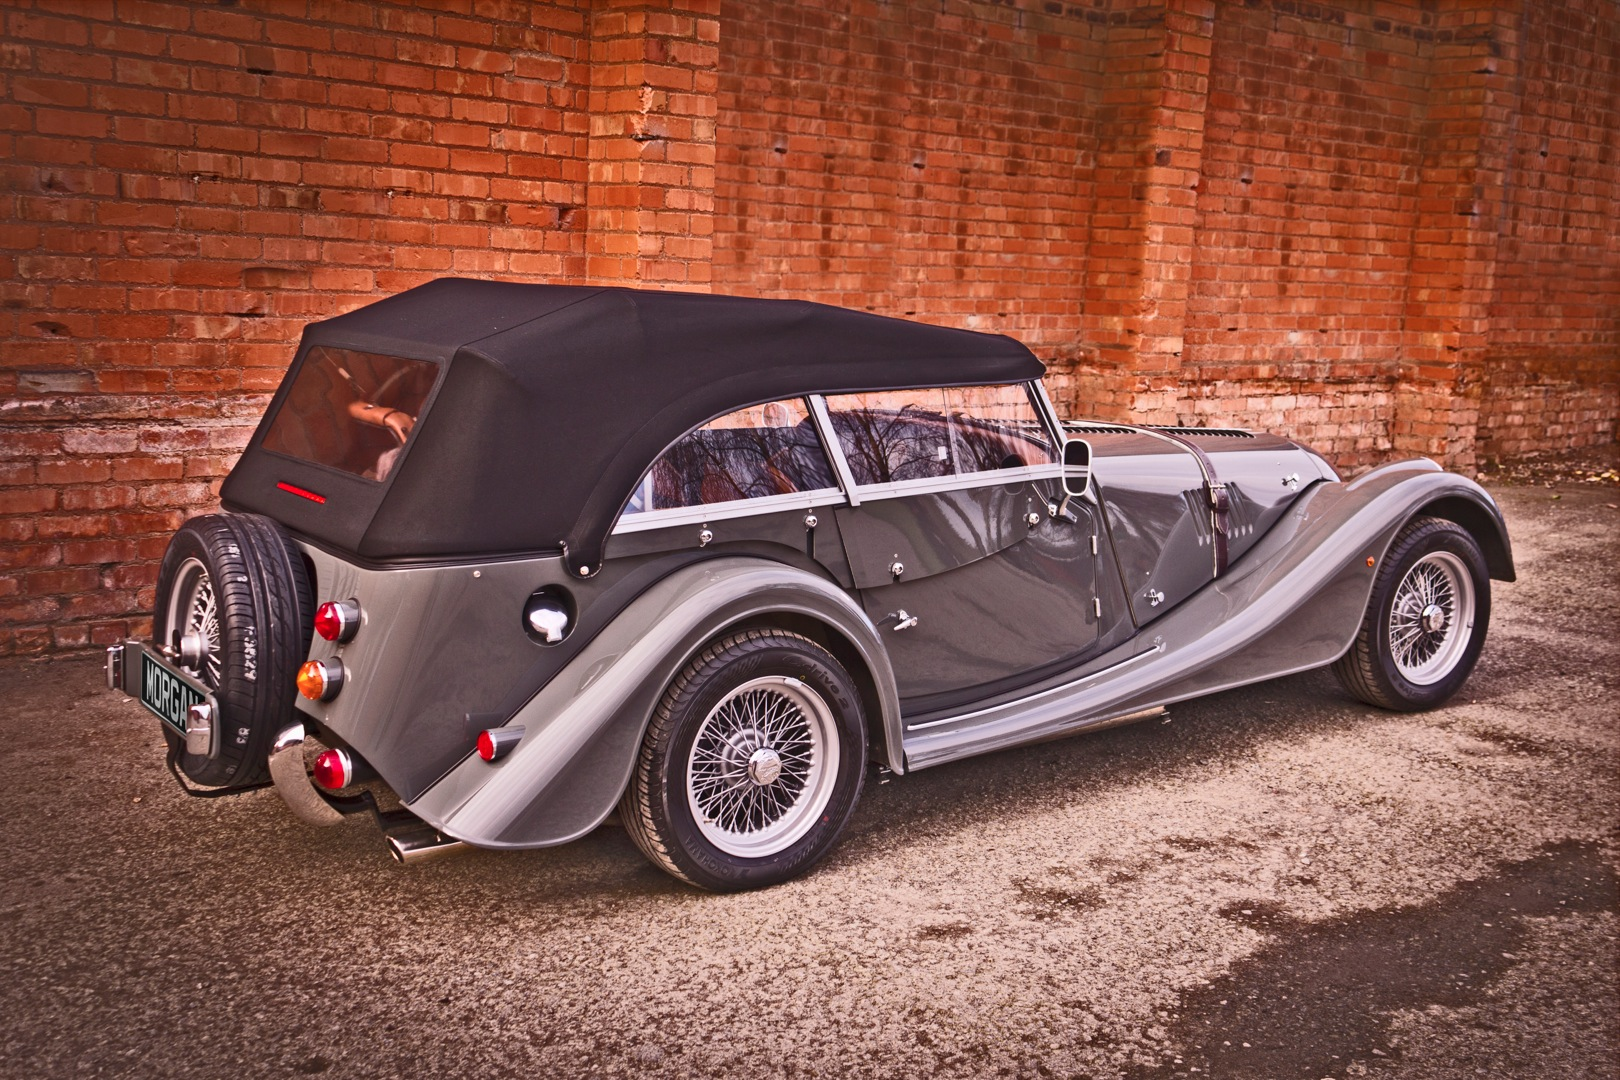 2006 Morgan 4 Seater #1